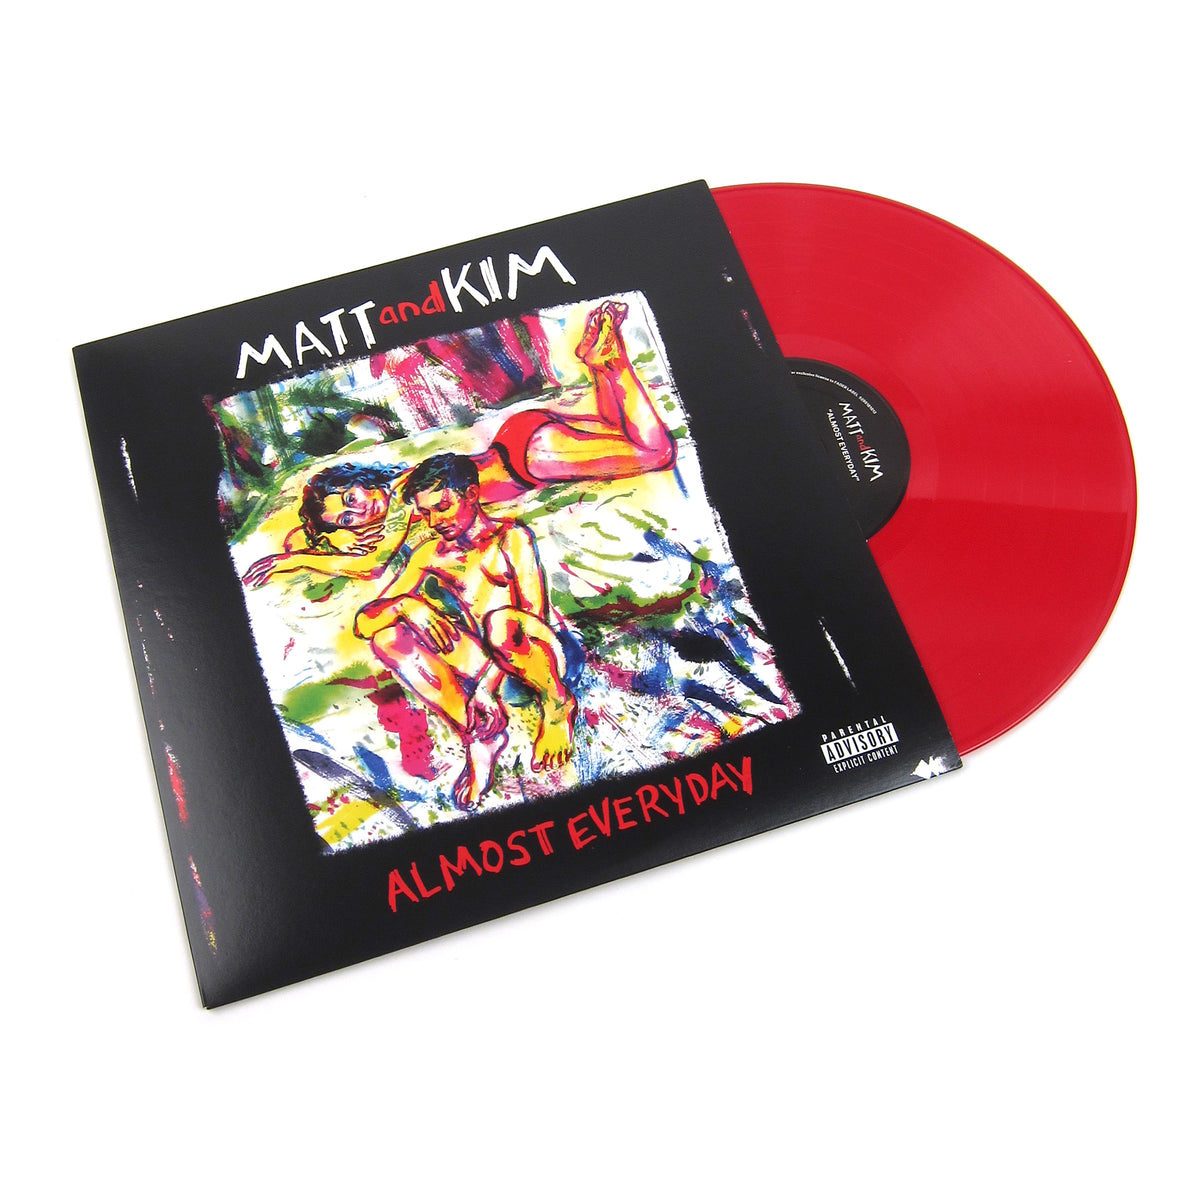 Matt & Kim: Almost Everyday (Colored Vinyl) Vinyl LP